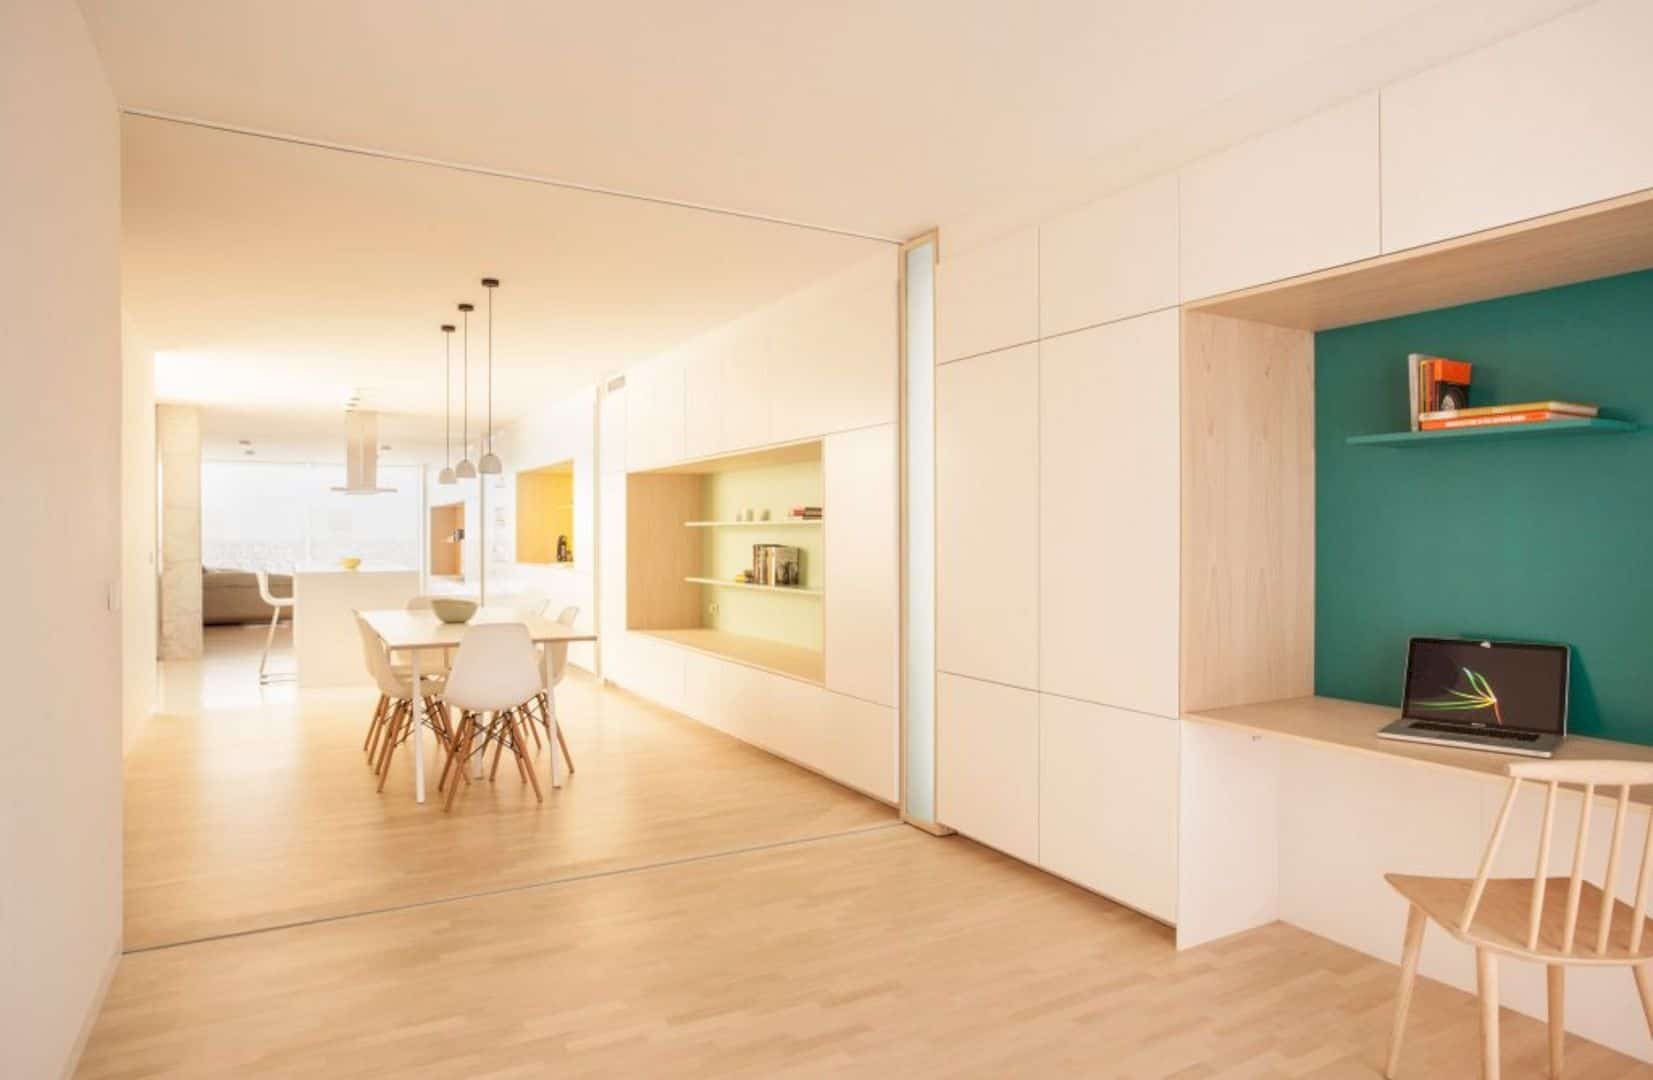 Alicante Apartment Renovation By Diego Lopez Fuster Arquitecture 7